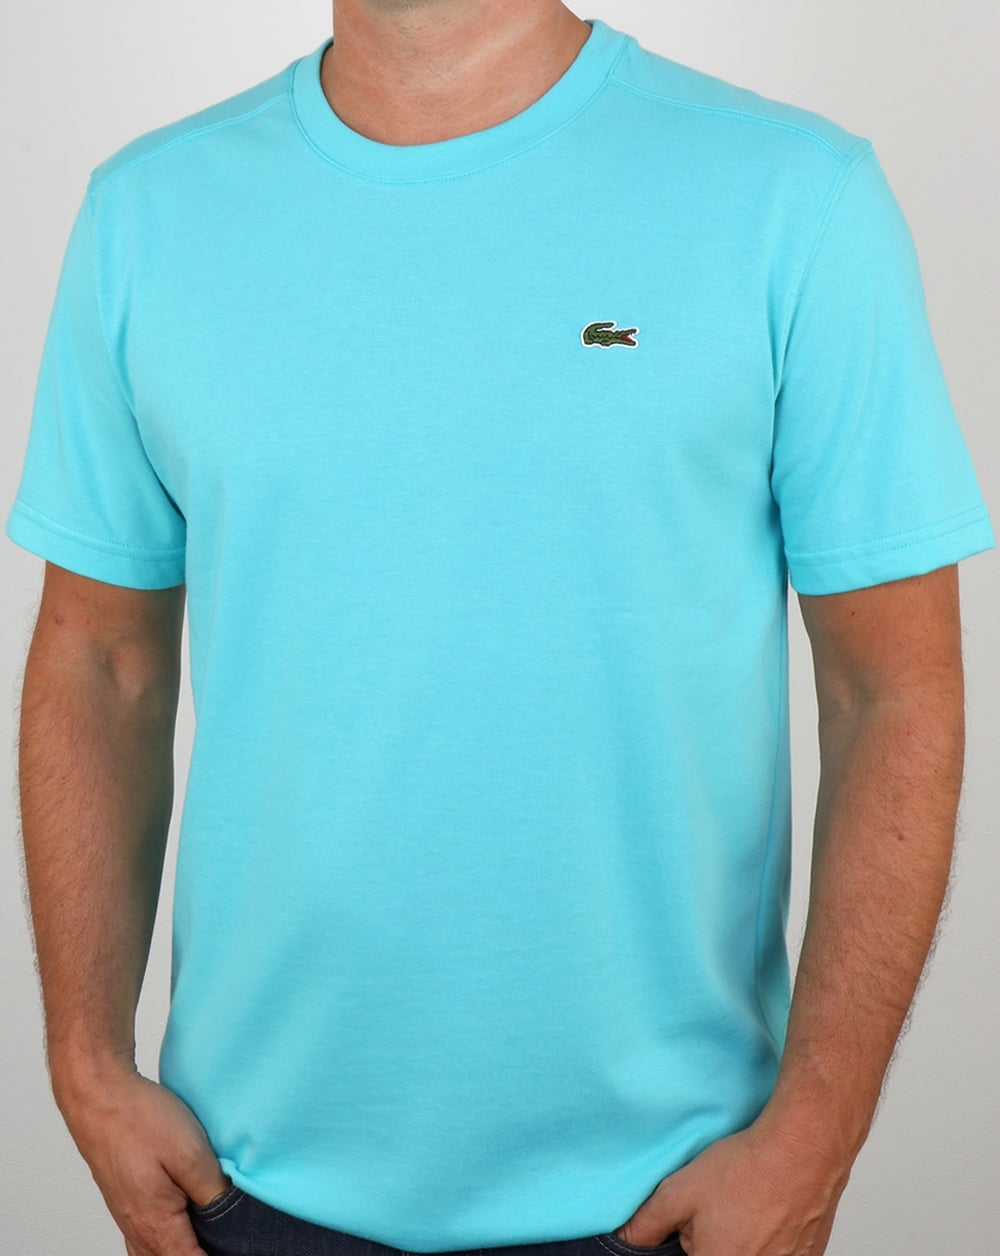 lacoste t shirt haiti blue crew neck men 39 s cotton tee. Black Bedroom Furniture Sets. Home Design Ideas